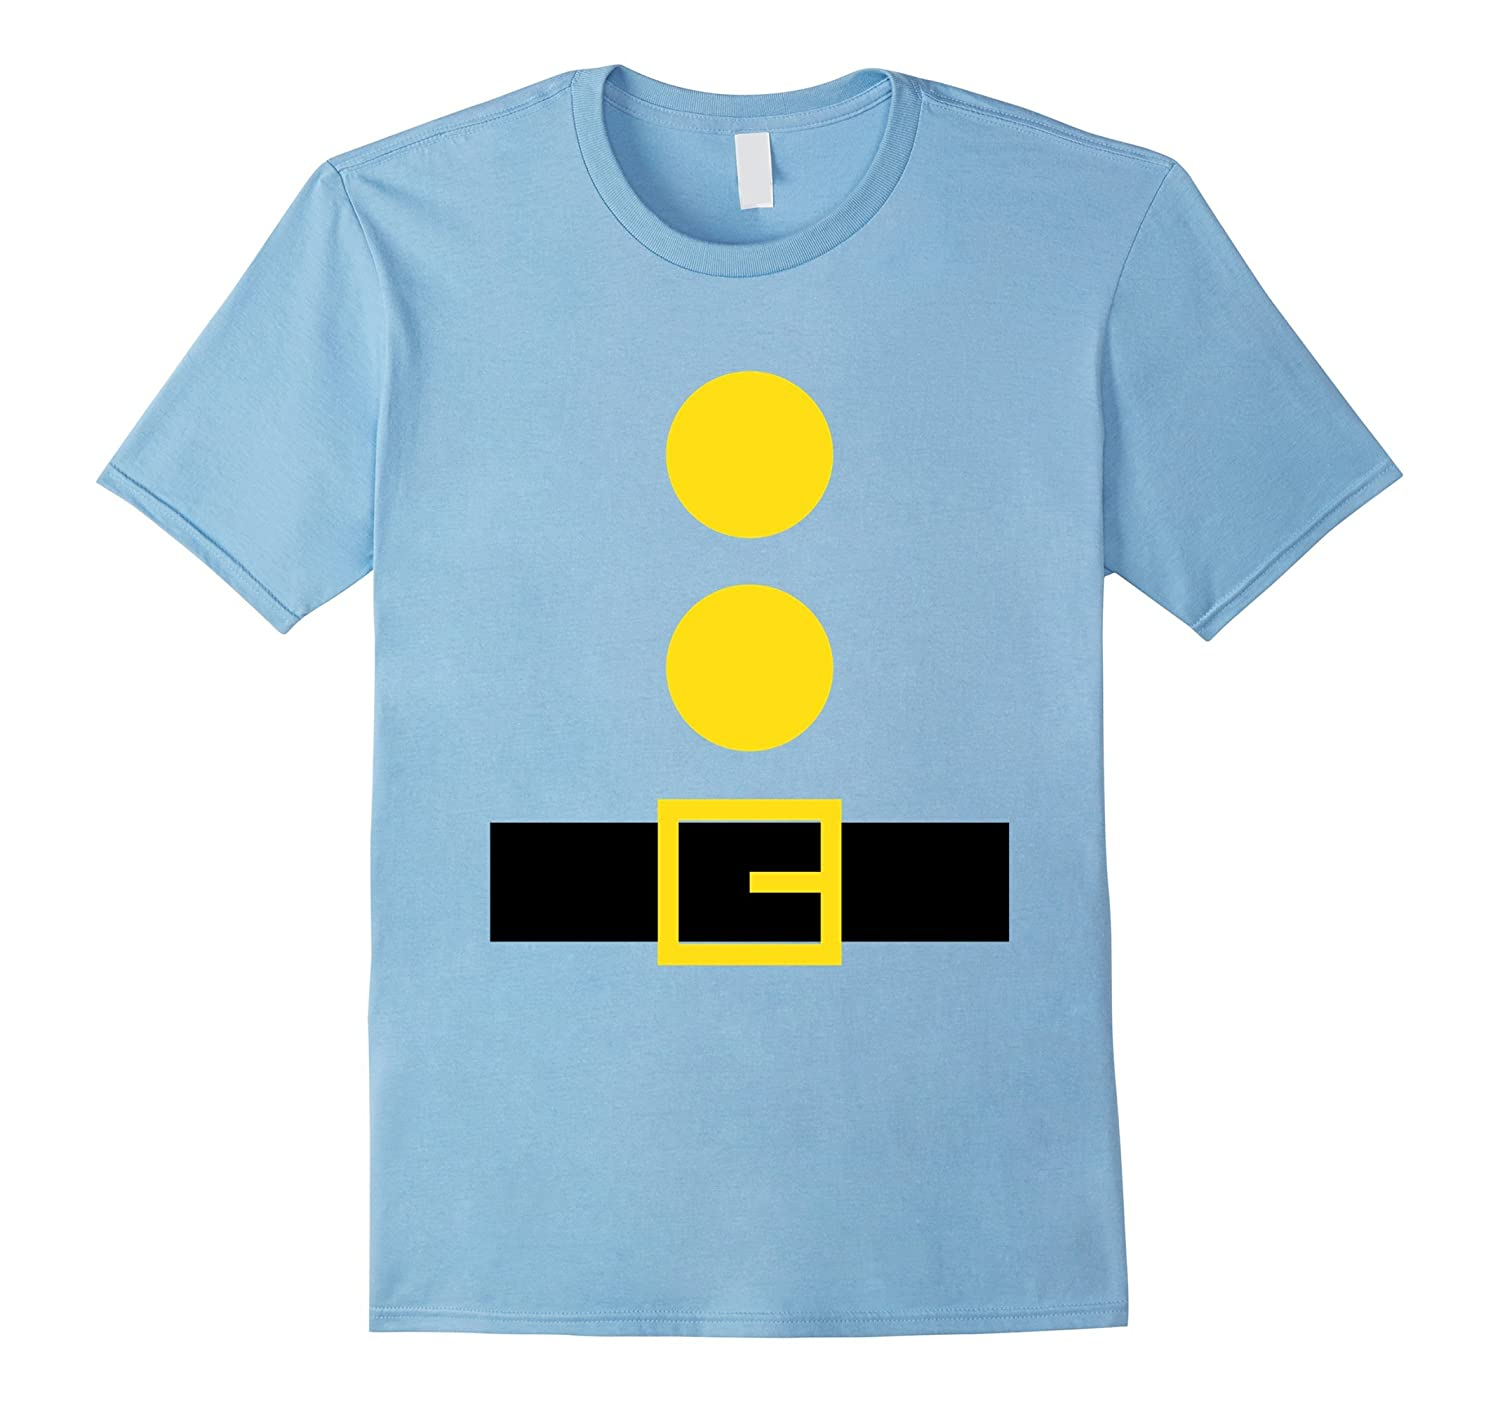 'Dwarf Outfit' Last Minute Halloween Costume Party Shirt